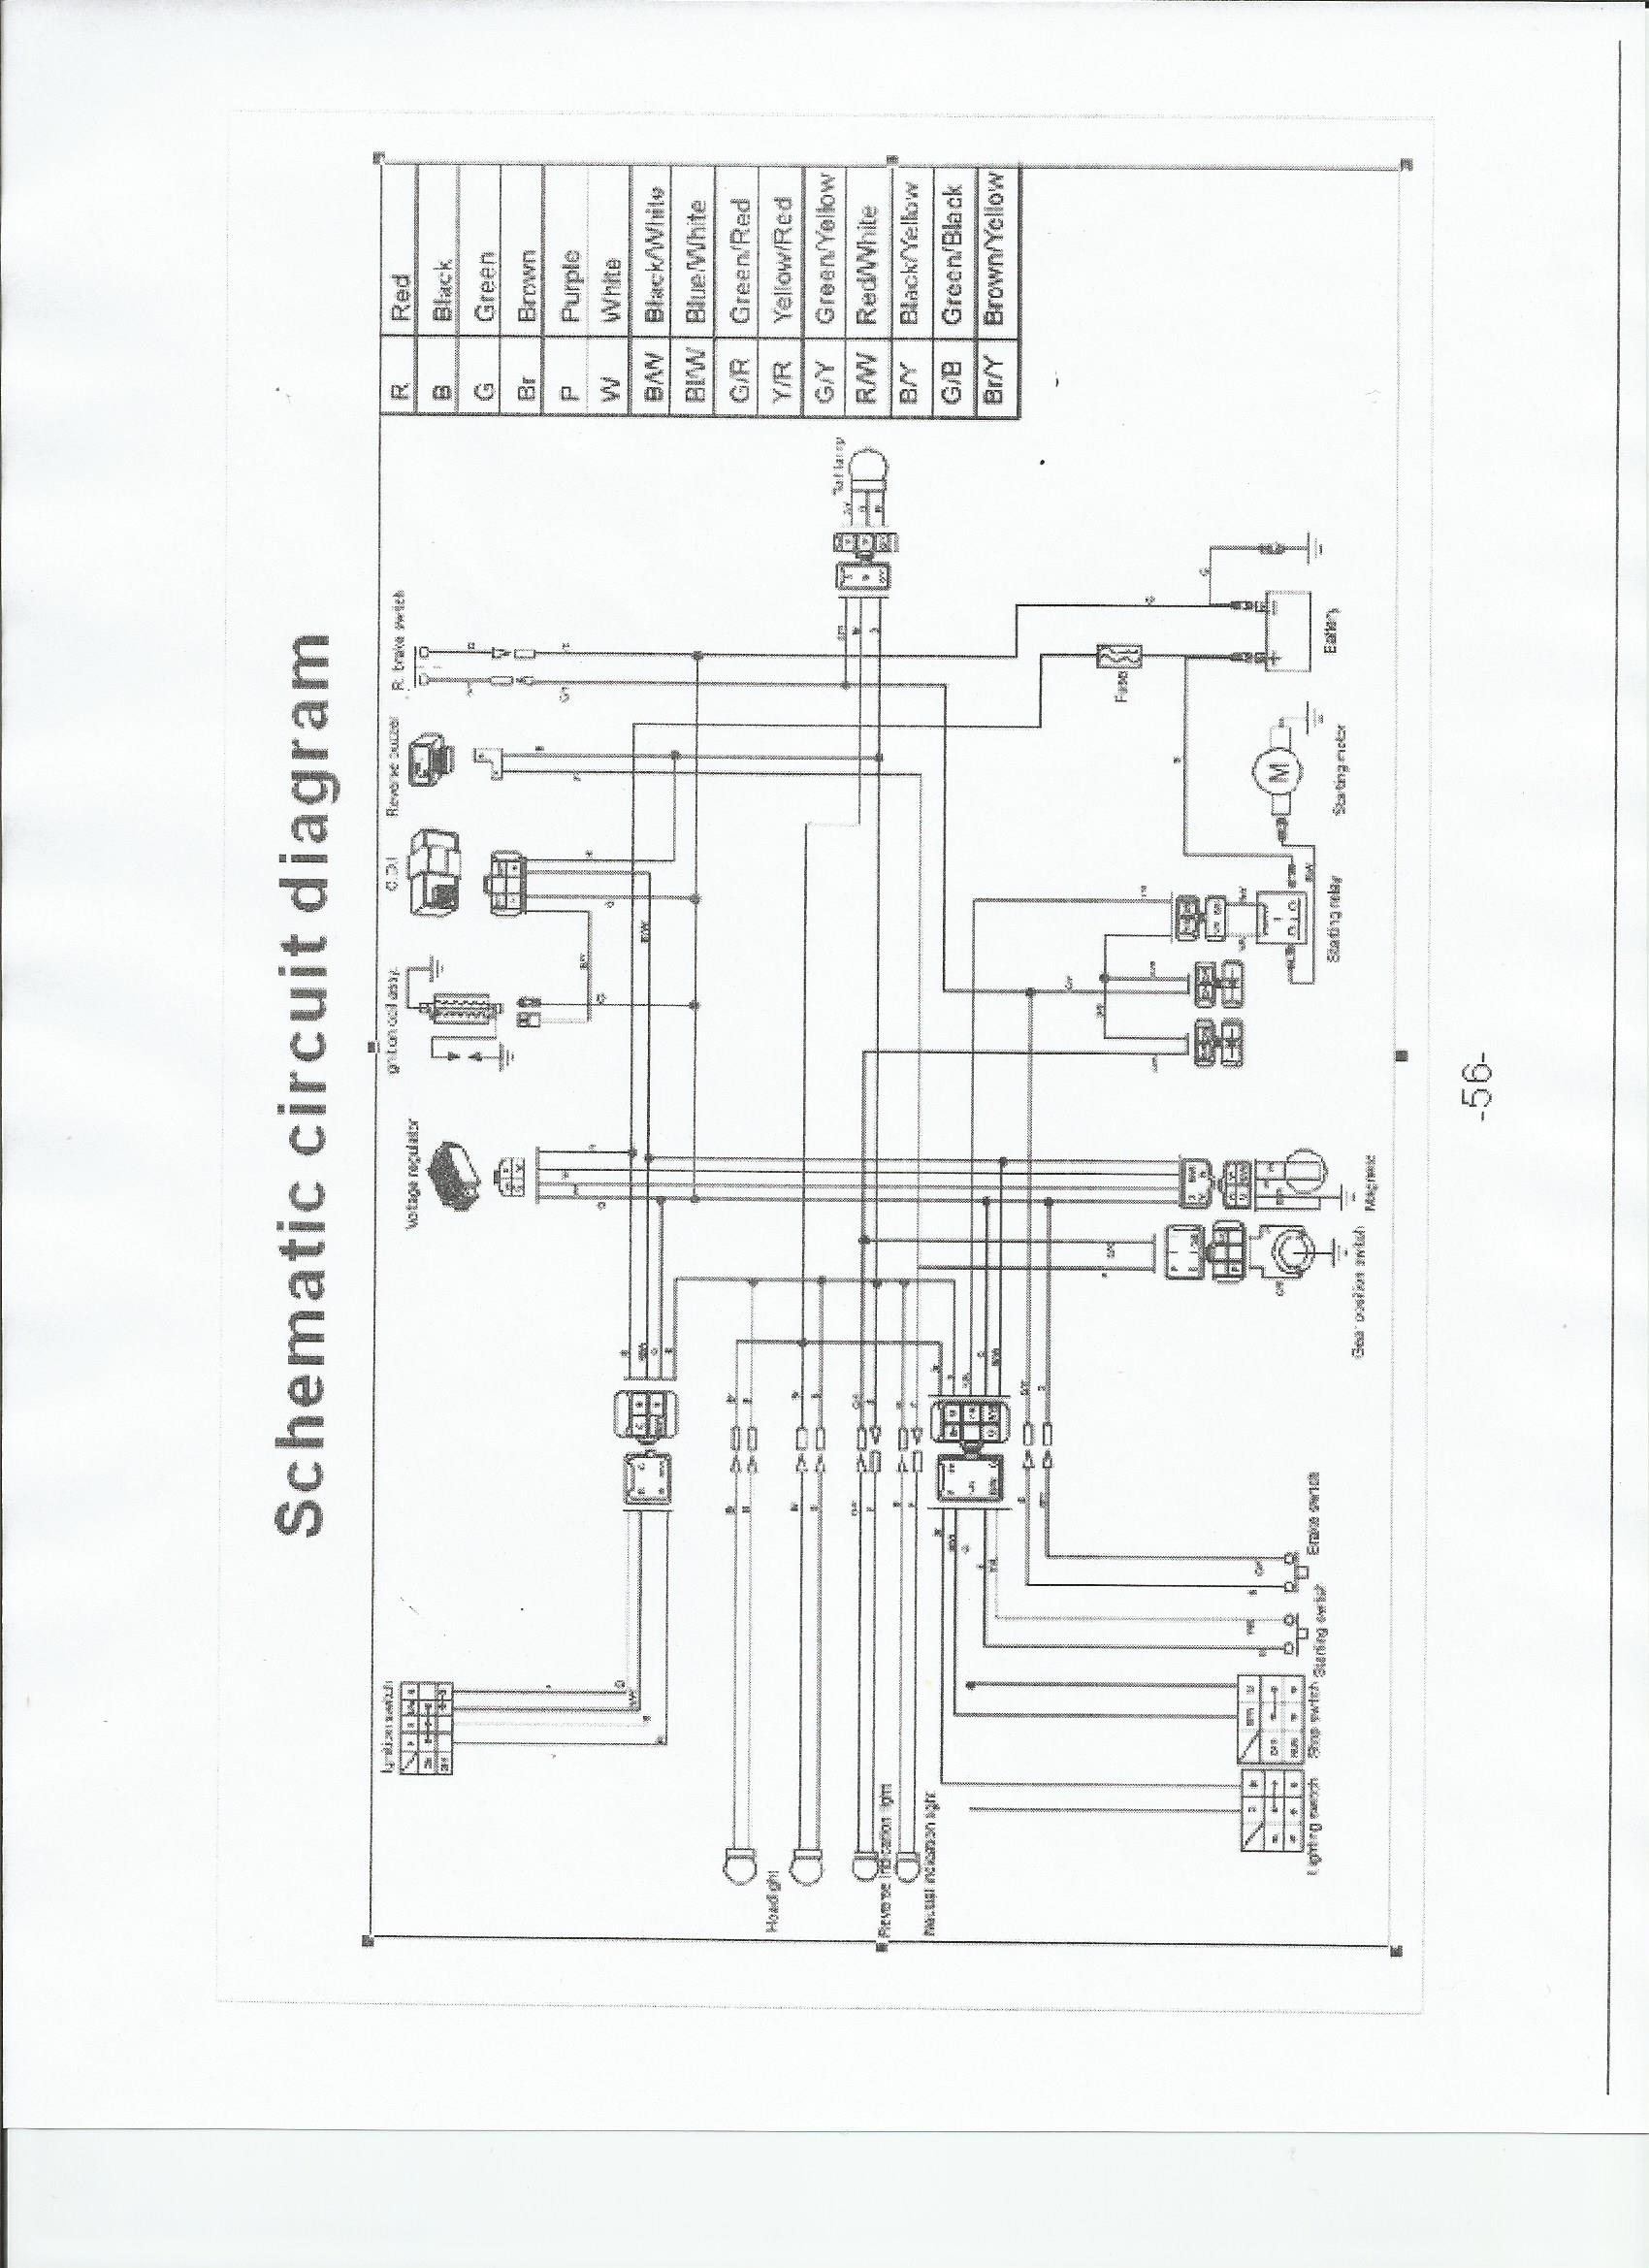 Marshin Atv Wiring Diagram - Wiring Diagrams Schematic on custom motorcycle wiring diagrams, big dog motorcycle repair manual, kawasaki motorcycle wiring diagrams, big dog motorcycle controls, big dog wiring schematic diagram, big dog motorcycle parts, big dog motorcycle seats, big dog motorcycles logo, big dog motorcycle fuses, big stuff 3 wiring diagram, big dog motorcycle battery, big dog motorcycle specs, big dog motorcycle electrical, big dog motorcycle accessories, titan motorcycle wiring diagrams, big dog motorcycle exhaust, dog hand signals diagrams, big dog motorcycle ebay, big dog motorcycle models, big dog motorcycle clutch,